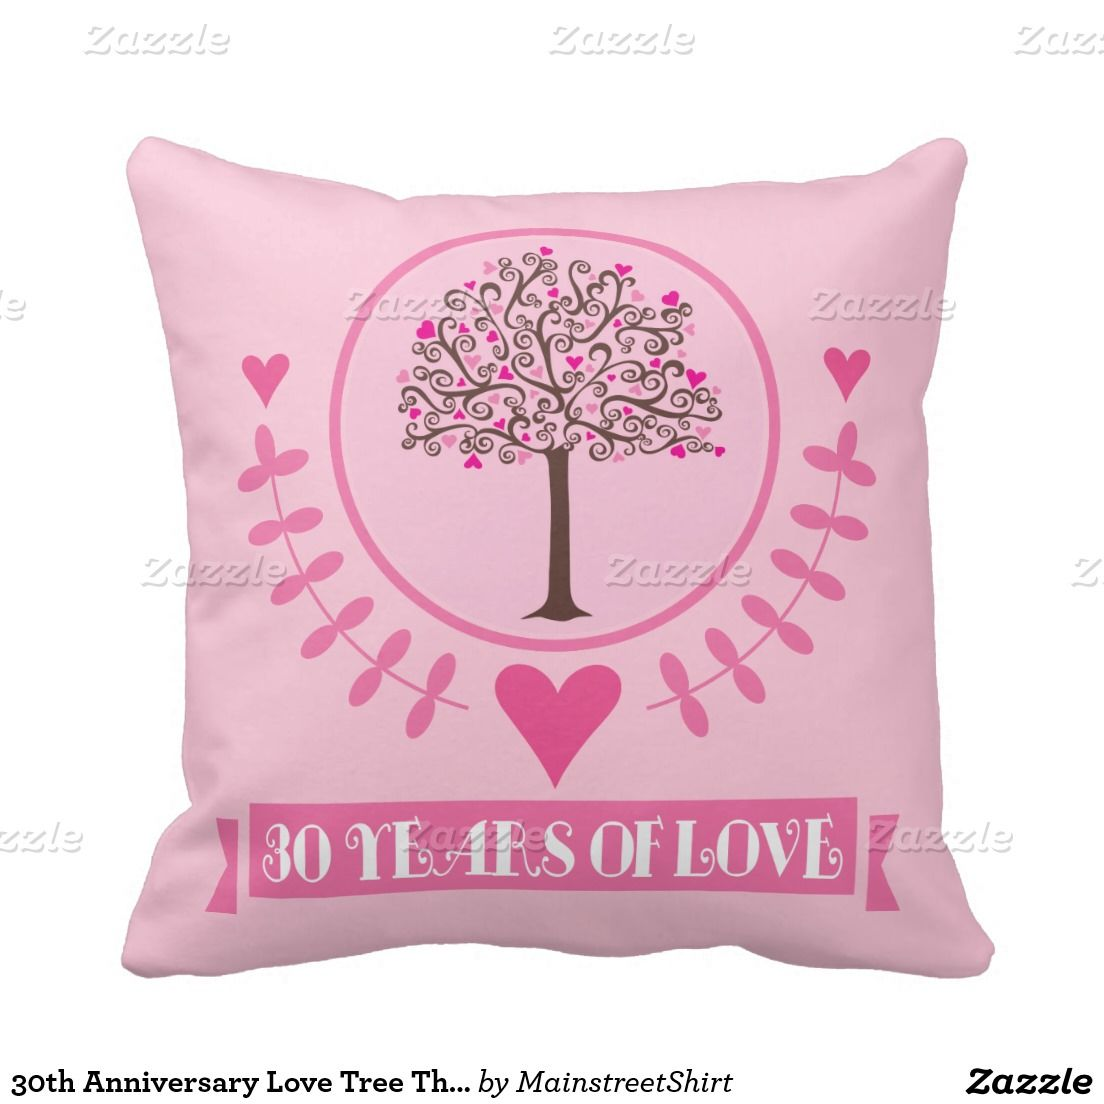 30th Wedding Anniversary Gifts For Husband: 30th Anniversary Love Tree Throw PIllow